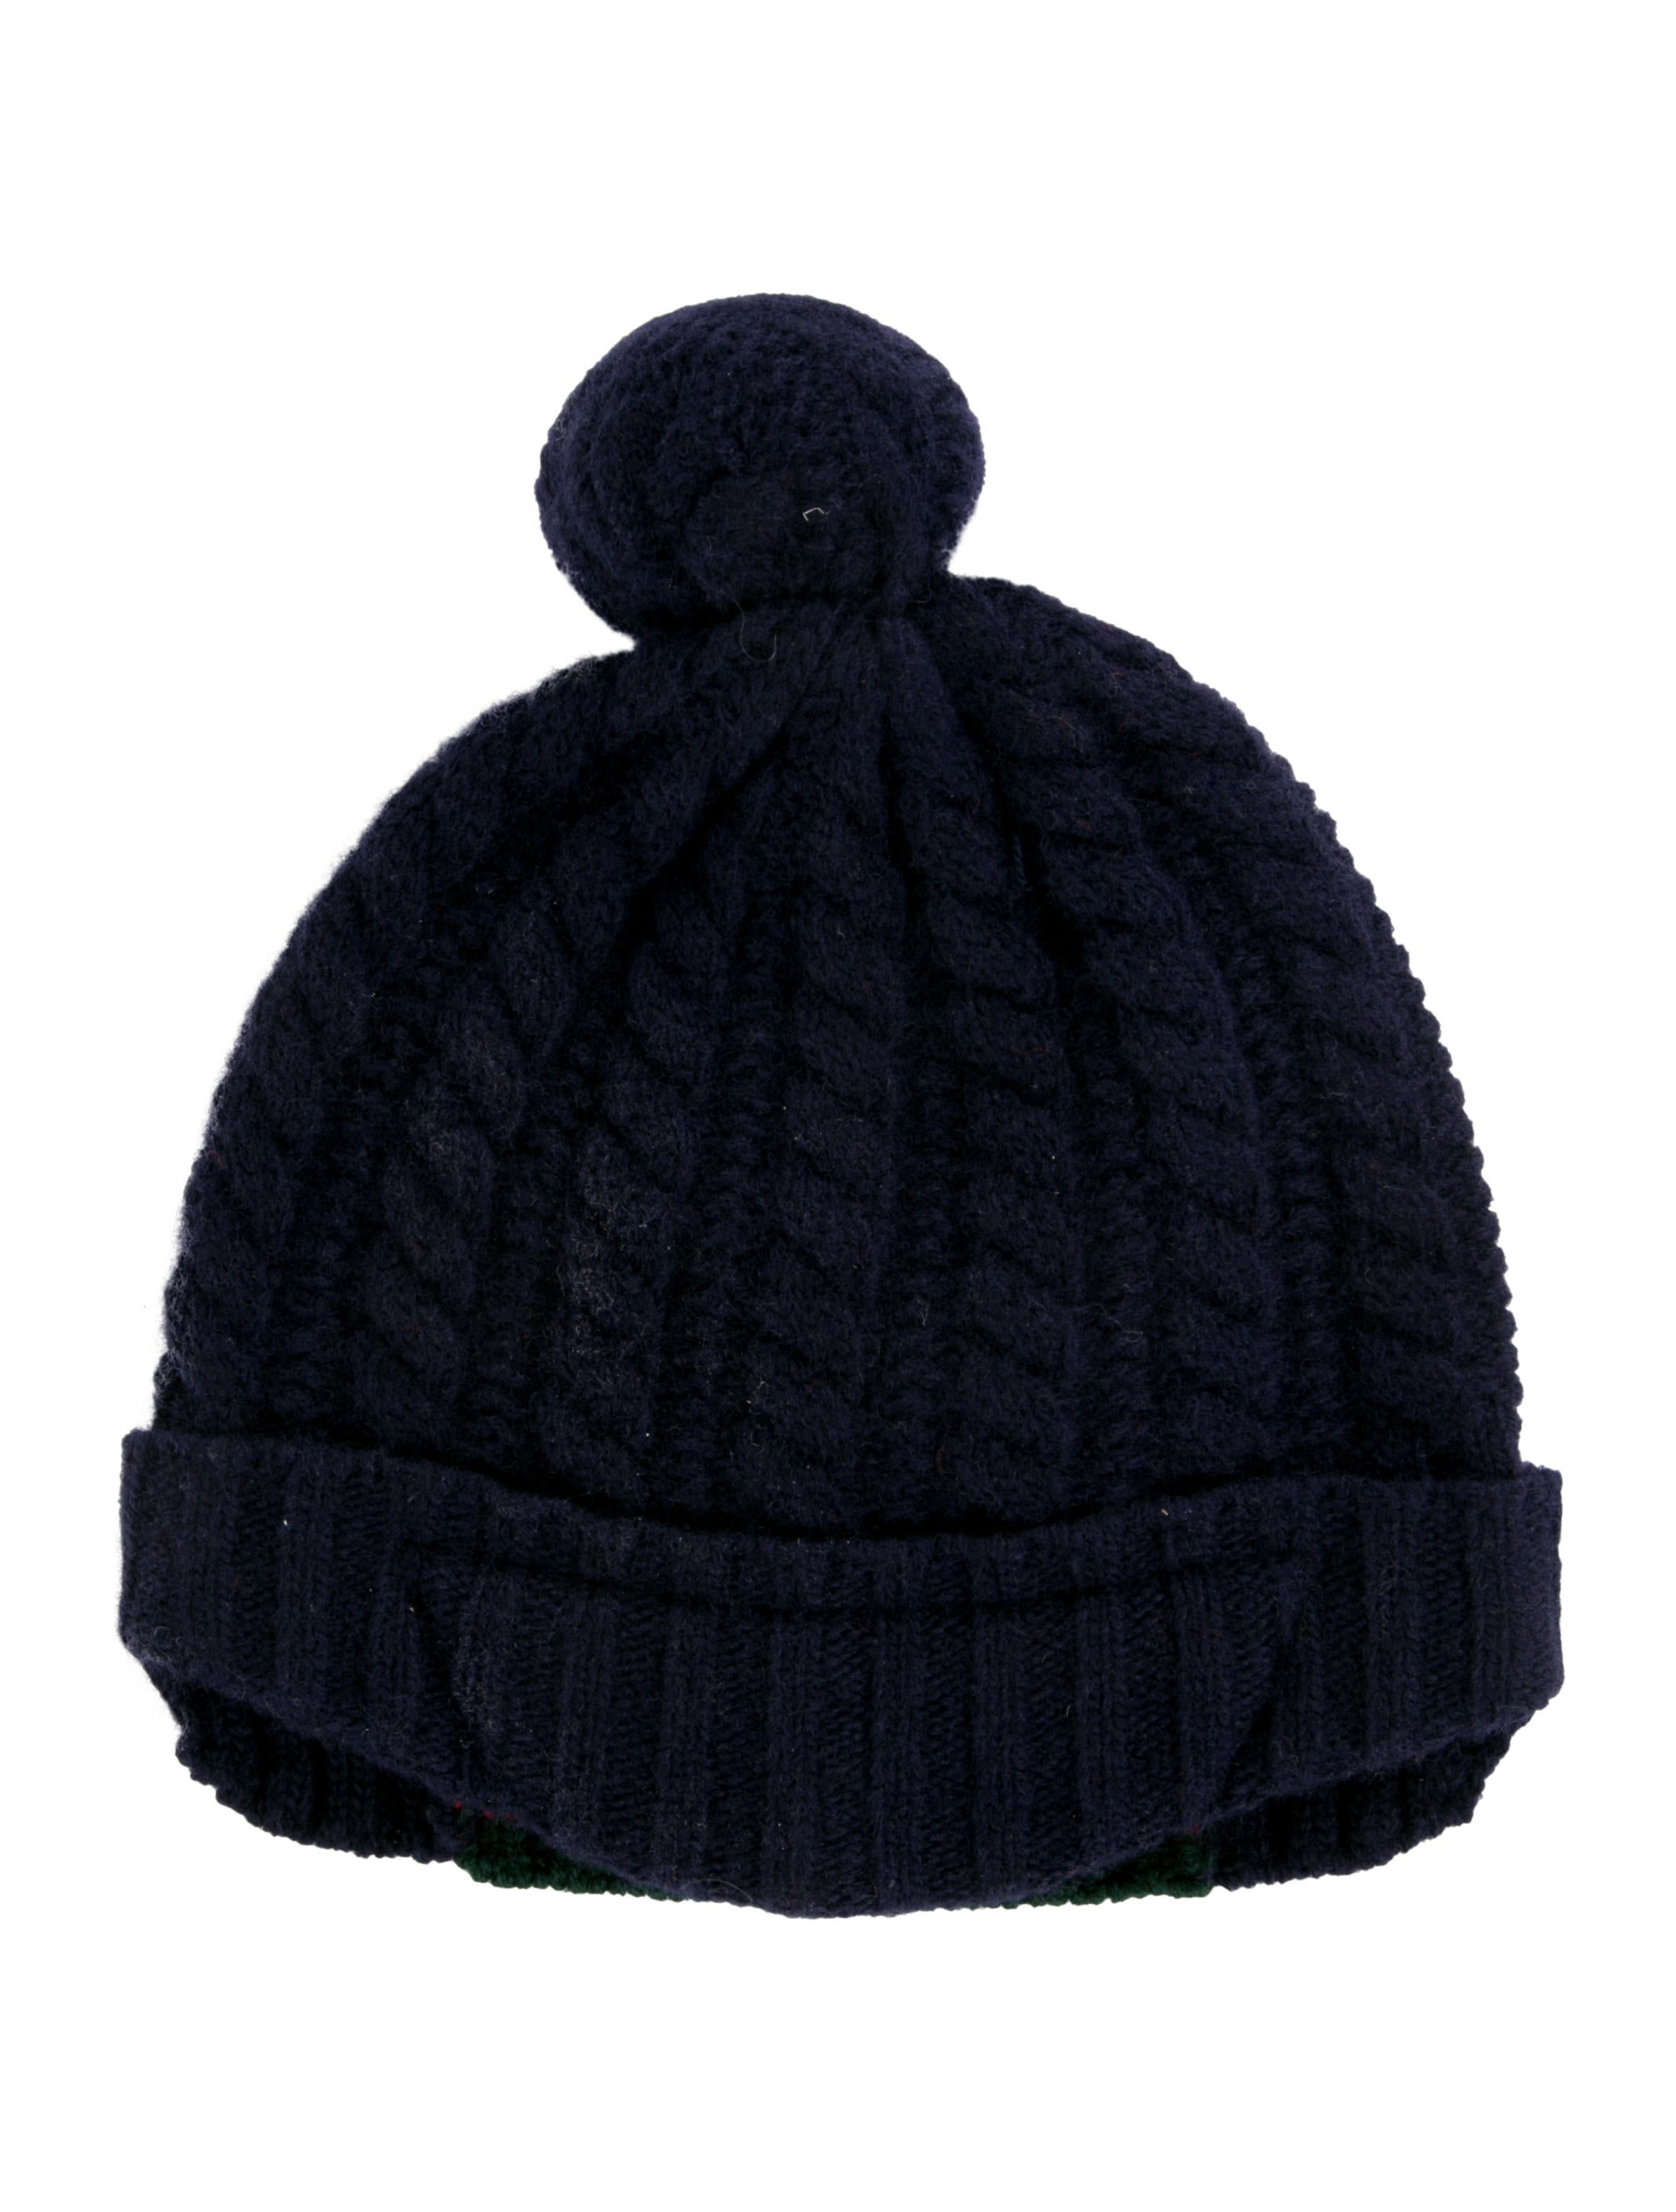 Gucci Boys  Virgin Wool Cable Knit Hat w  Tags - Boys - GUC265556 ... 8a8070c662e